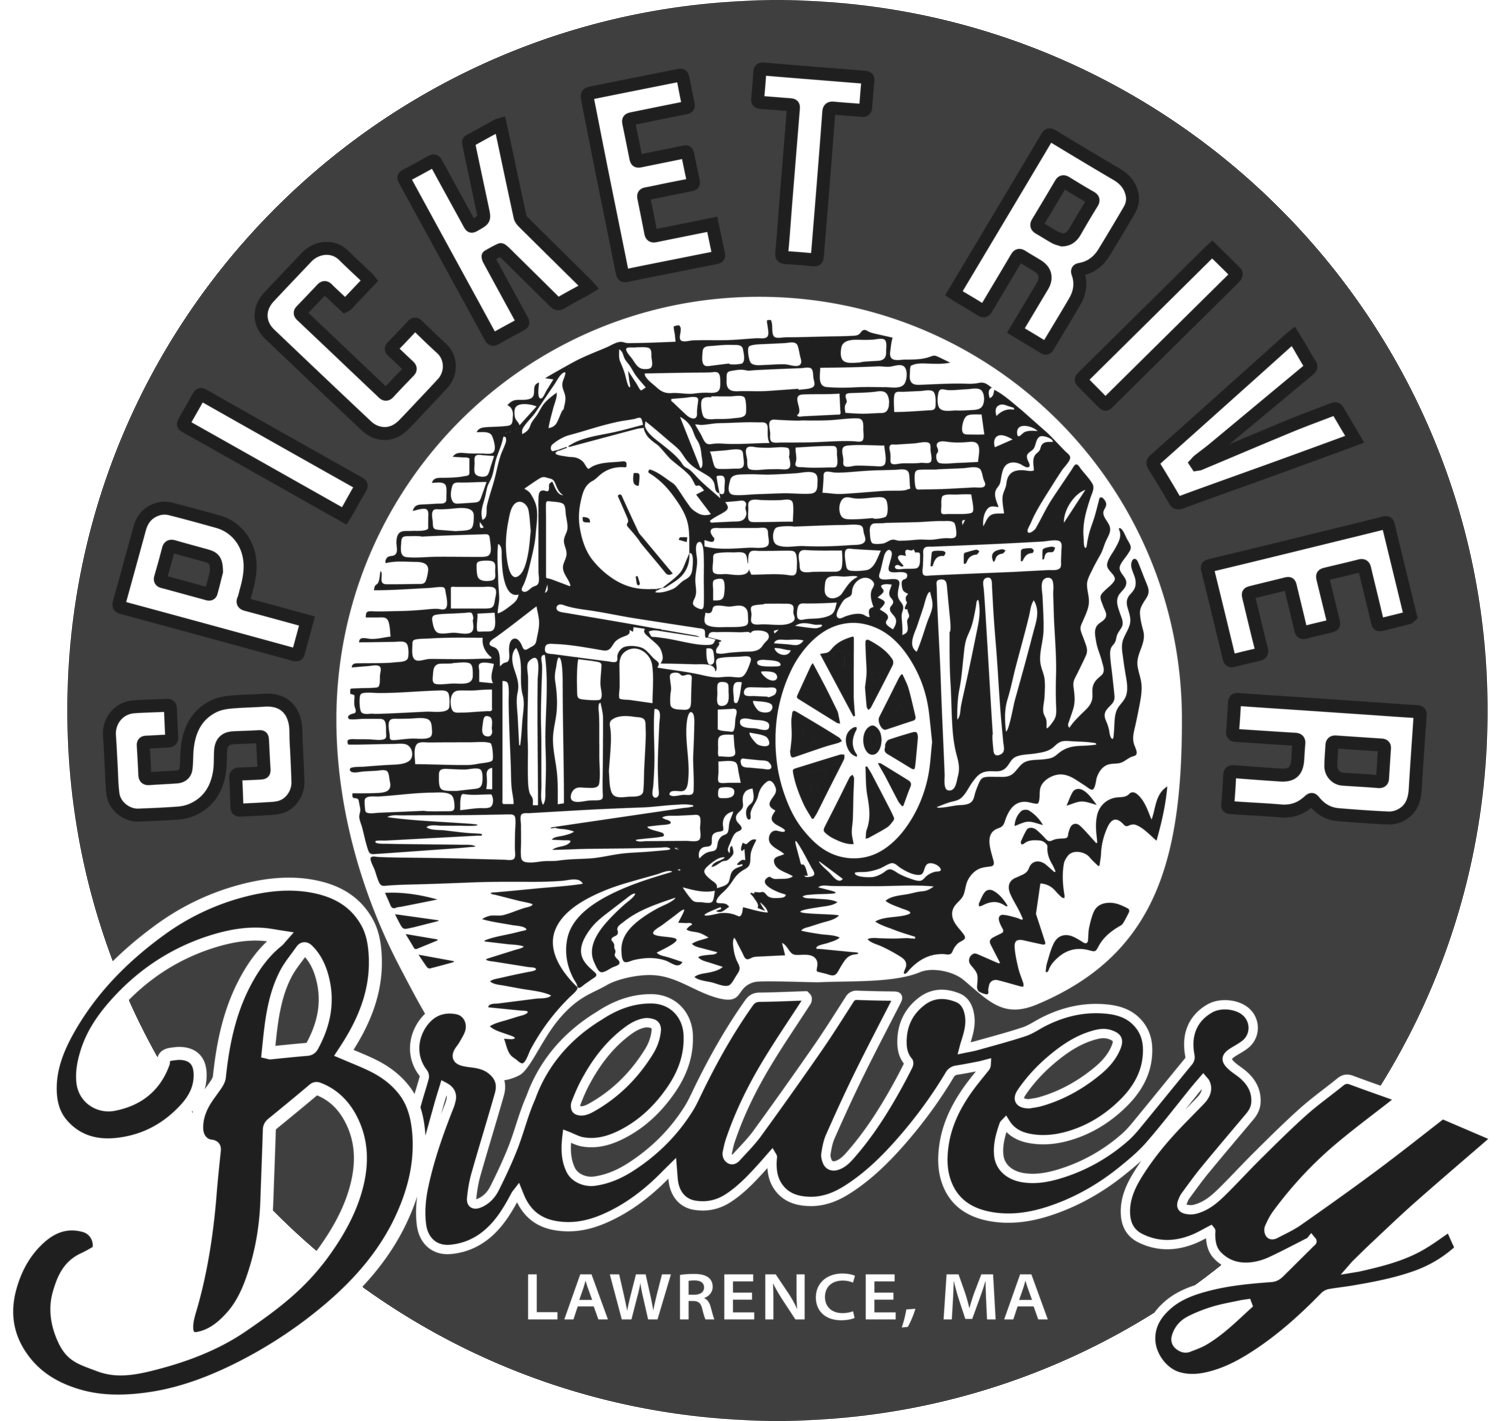 Spicket river brewing company